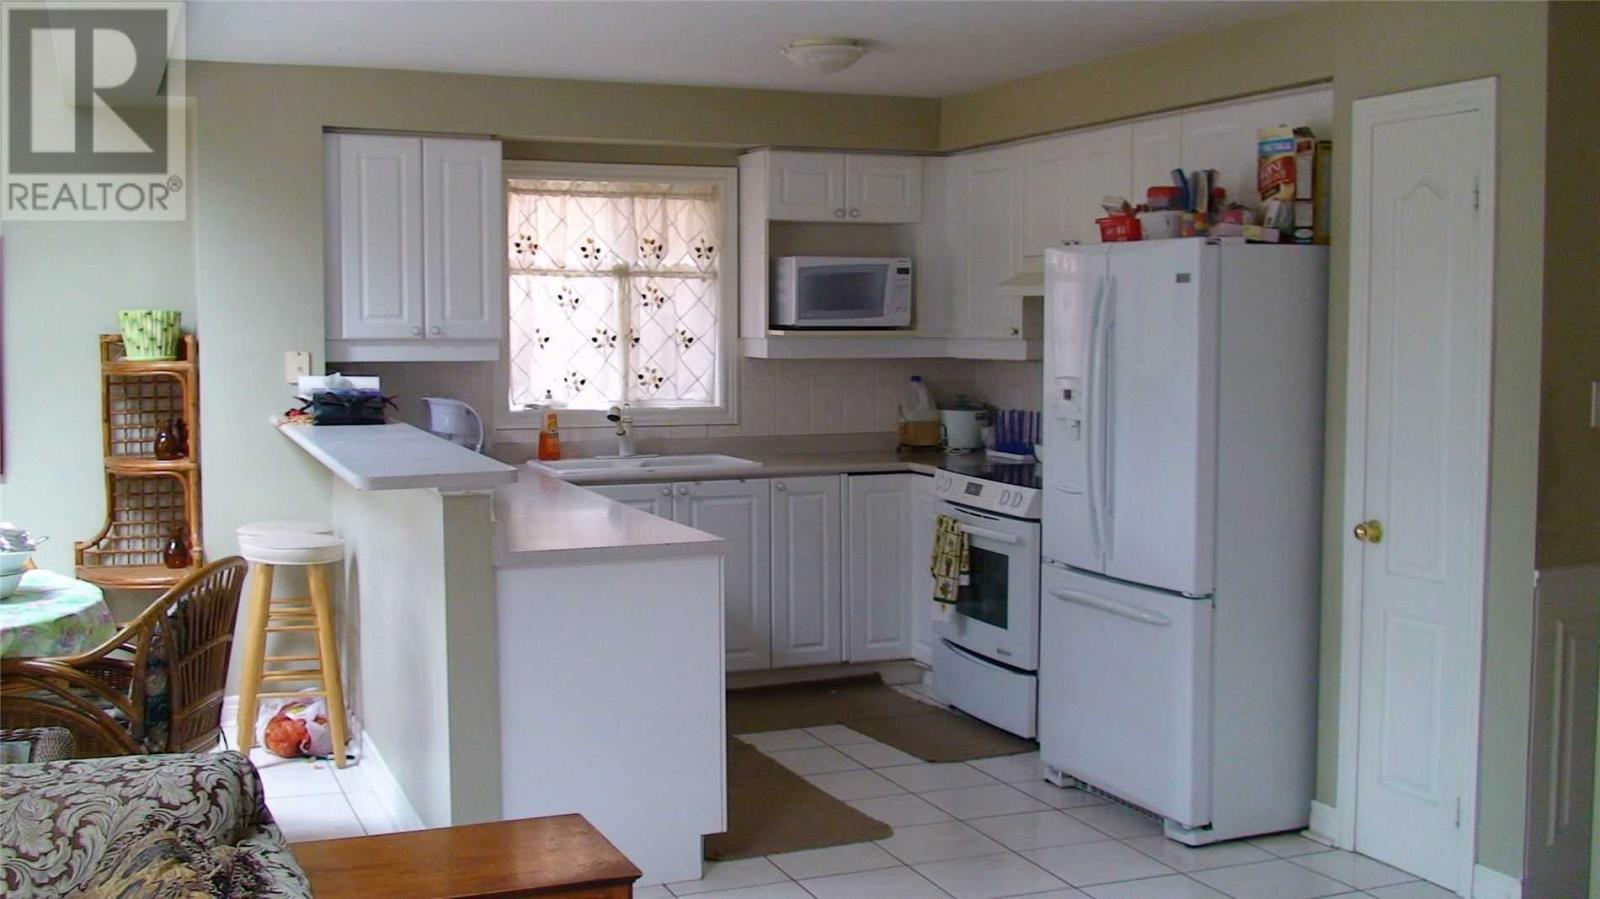 5316 Russell View Rd, Mississauga, Ontario  L5M 5V8 - Photo 3 - W4628616